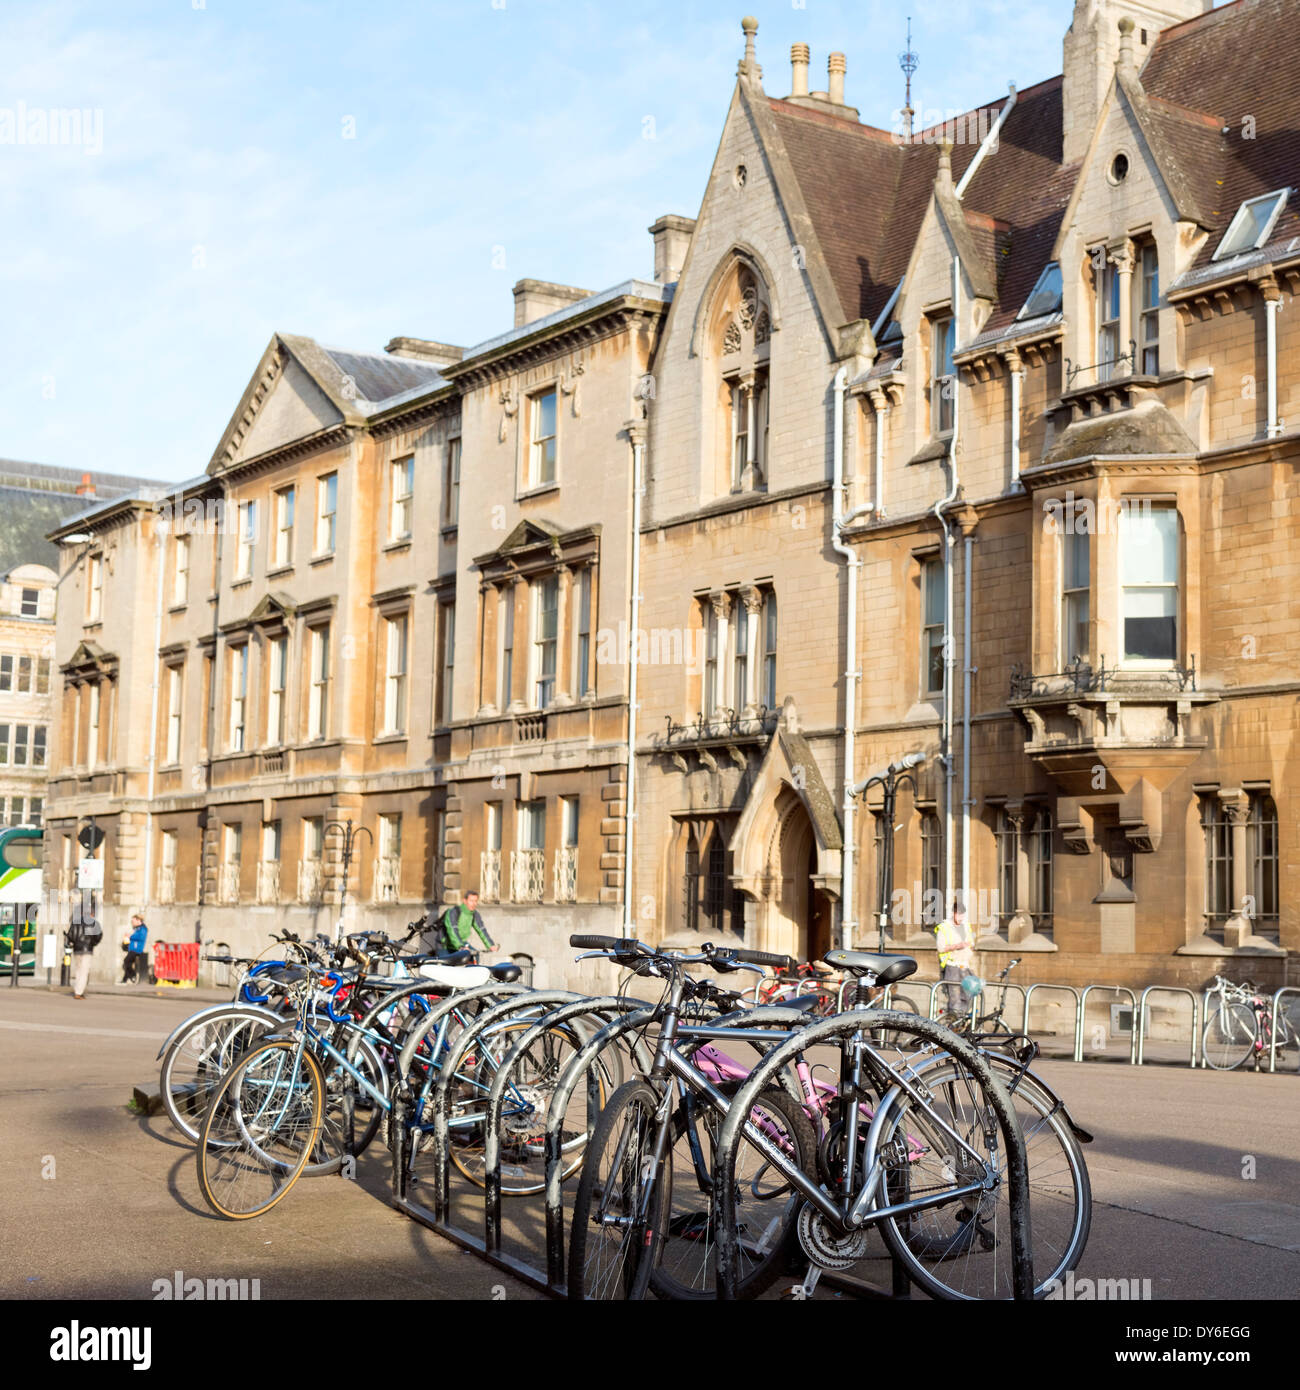 Bicyclettes dans Broad Street, centre-ville d'Oxford, Oxfordshire, Angleterre. Photo Stock